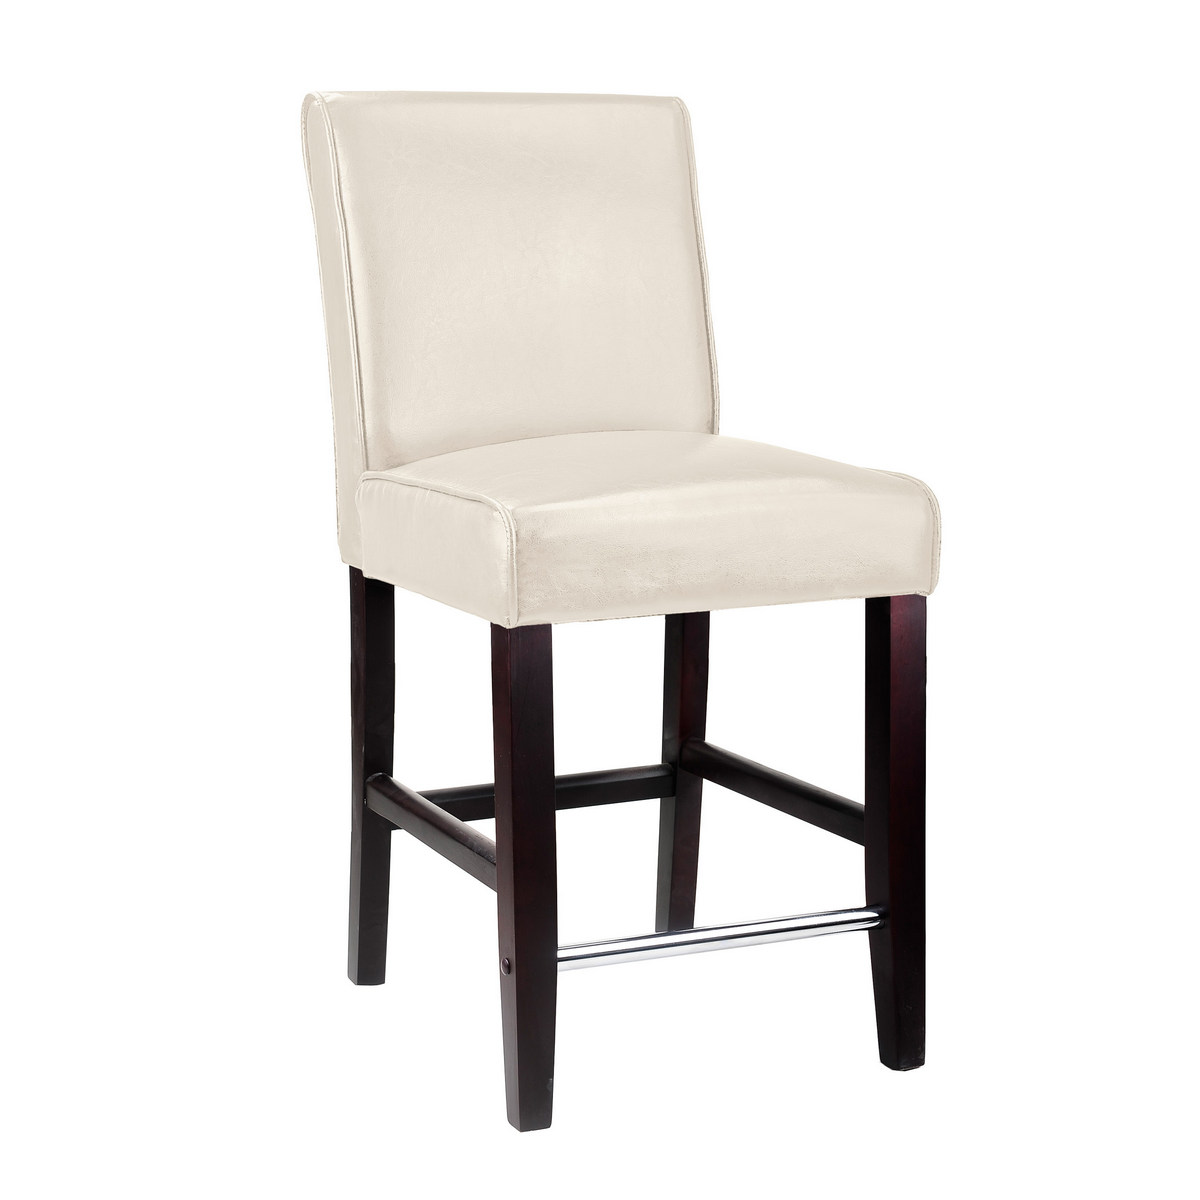 CorLiving DAD-514-B Antonio Counter Height Barstool in White Bonded Leather